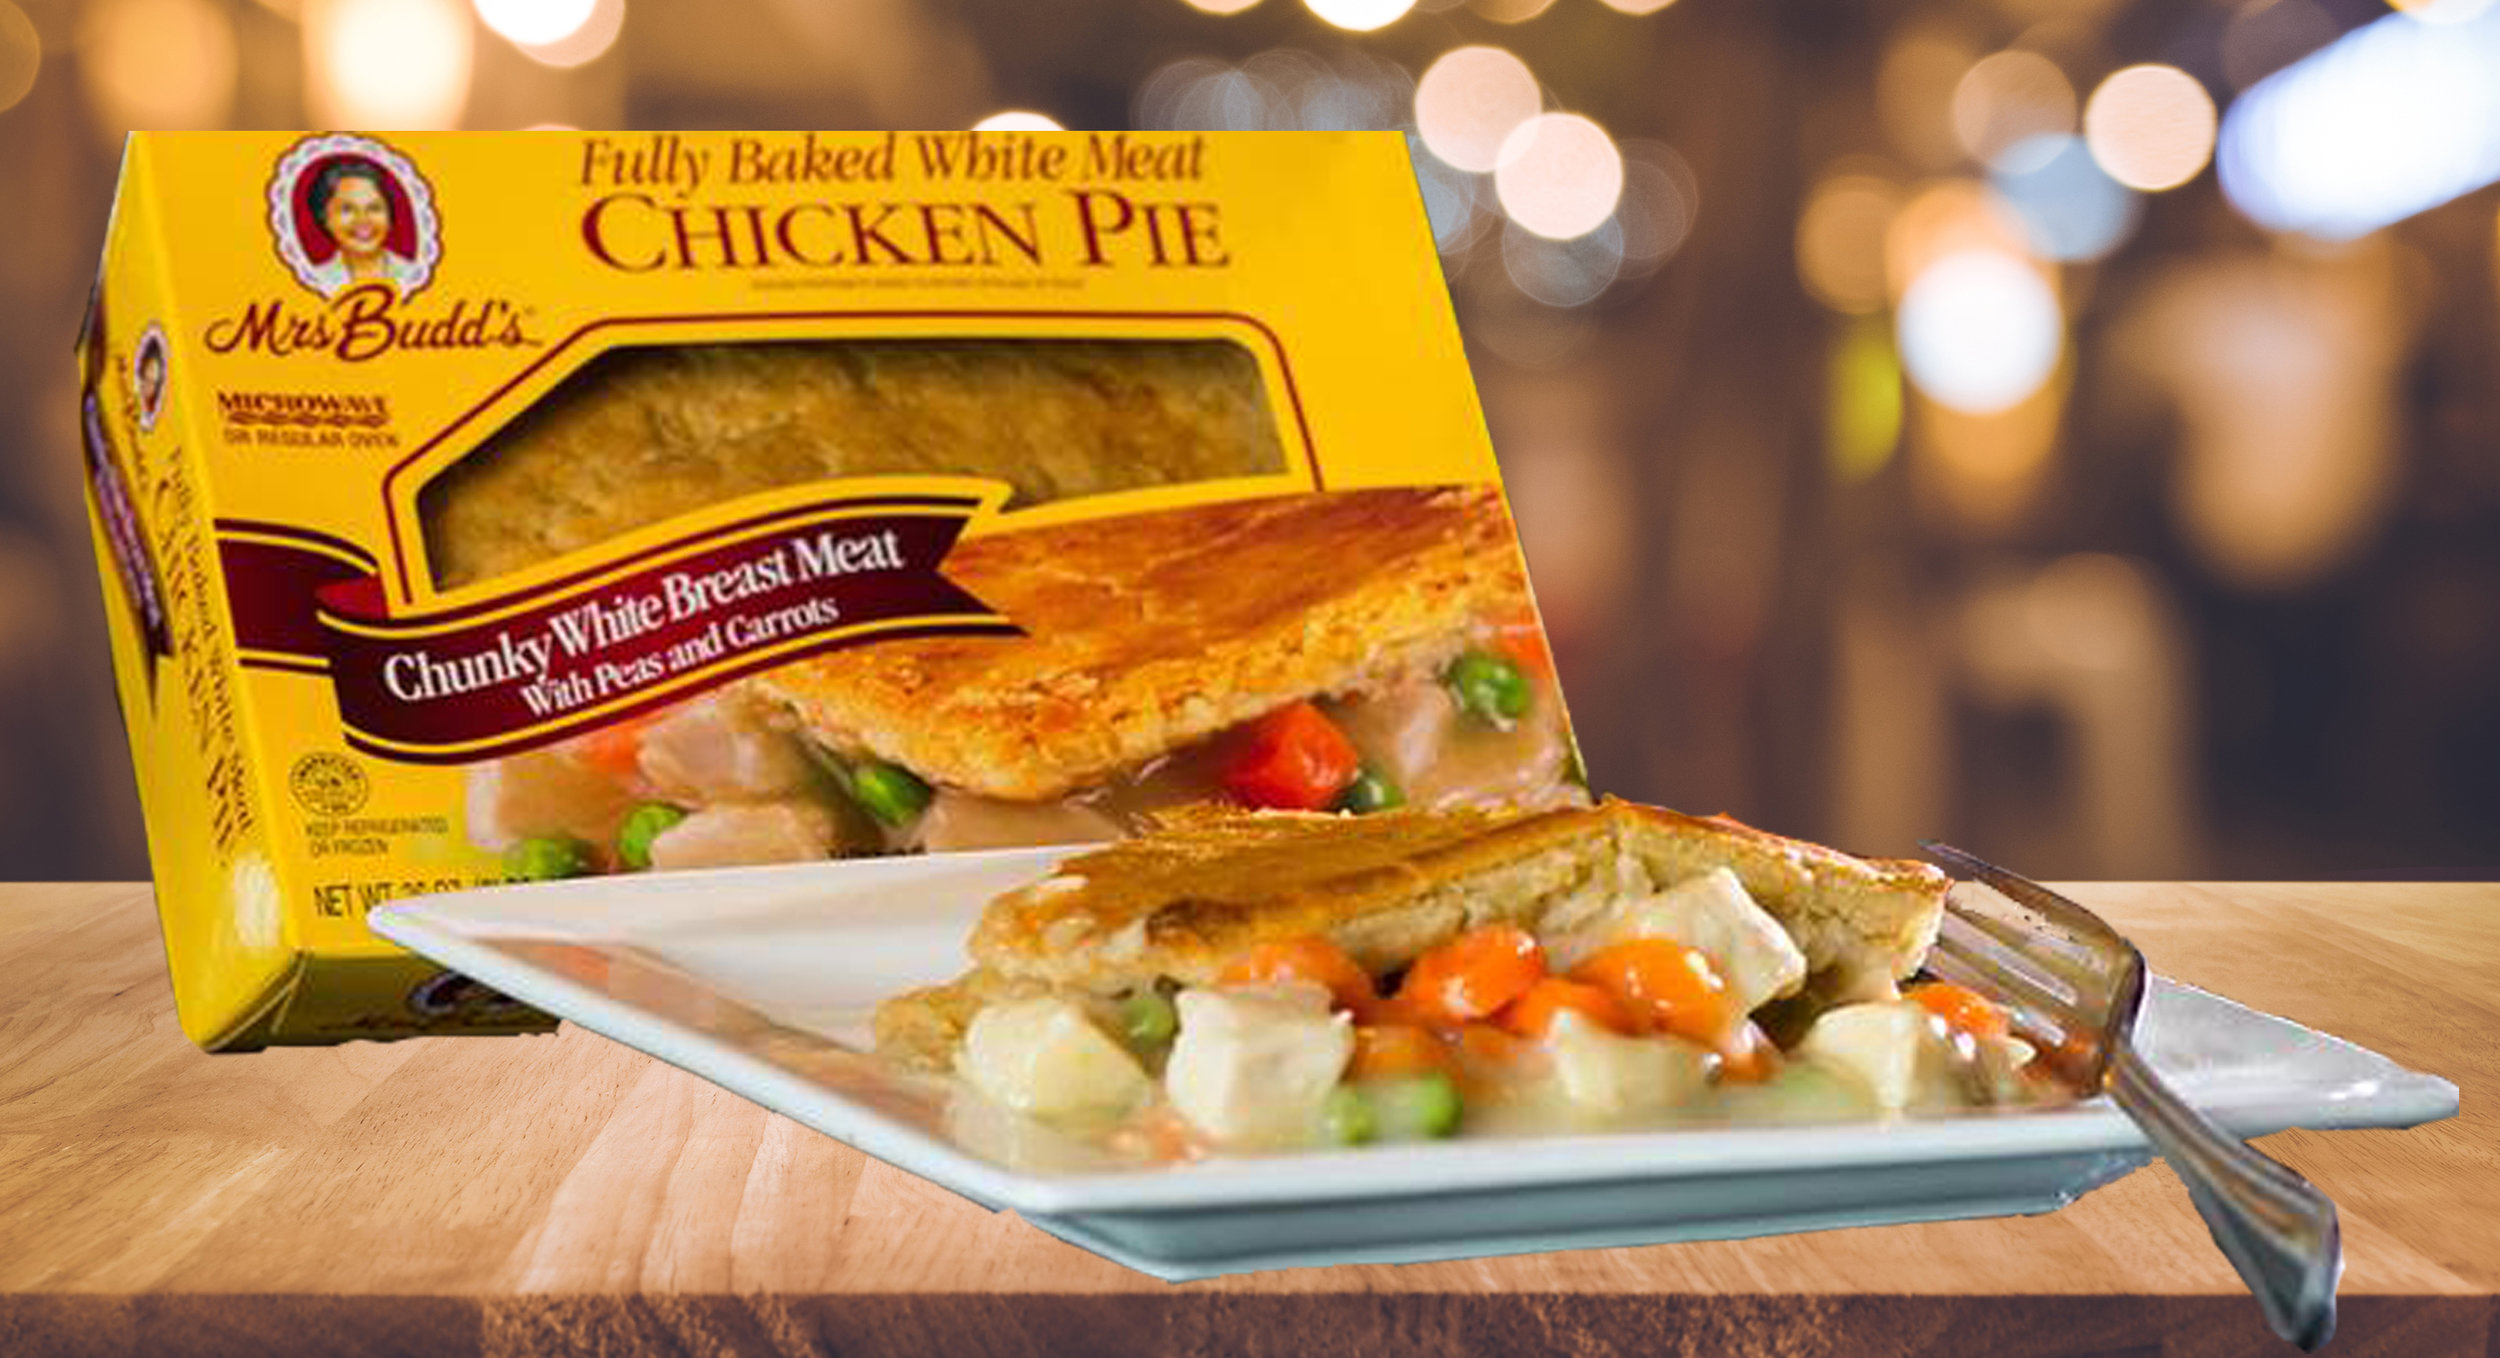 shipyard photo chicken pie with fork and istock background.jpg